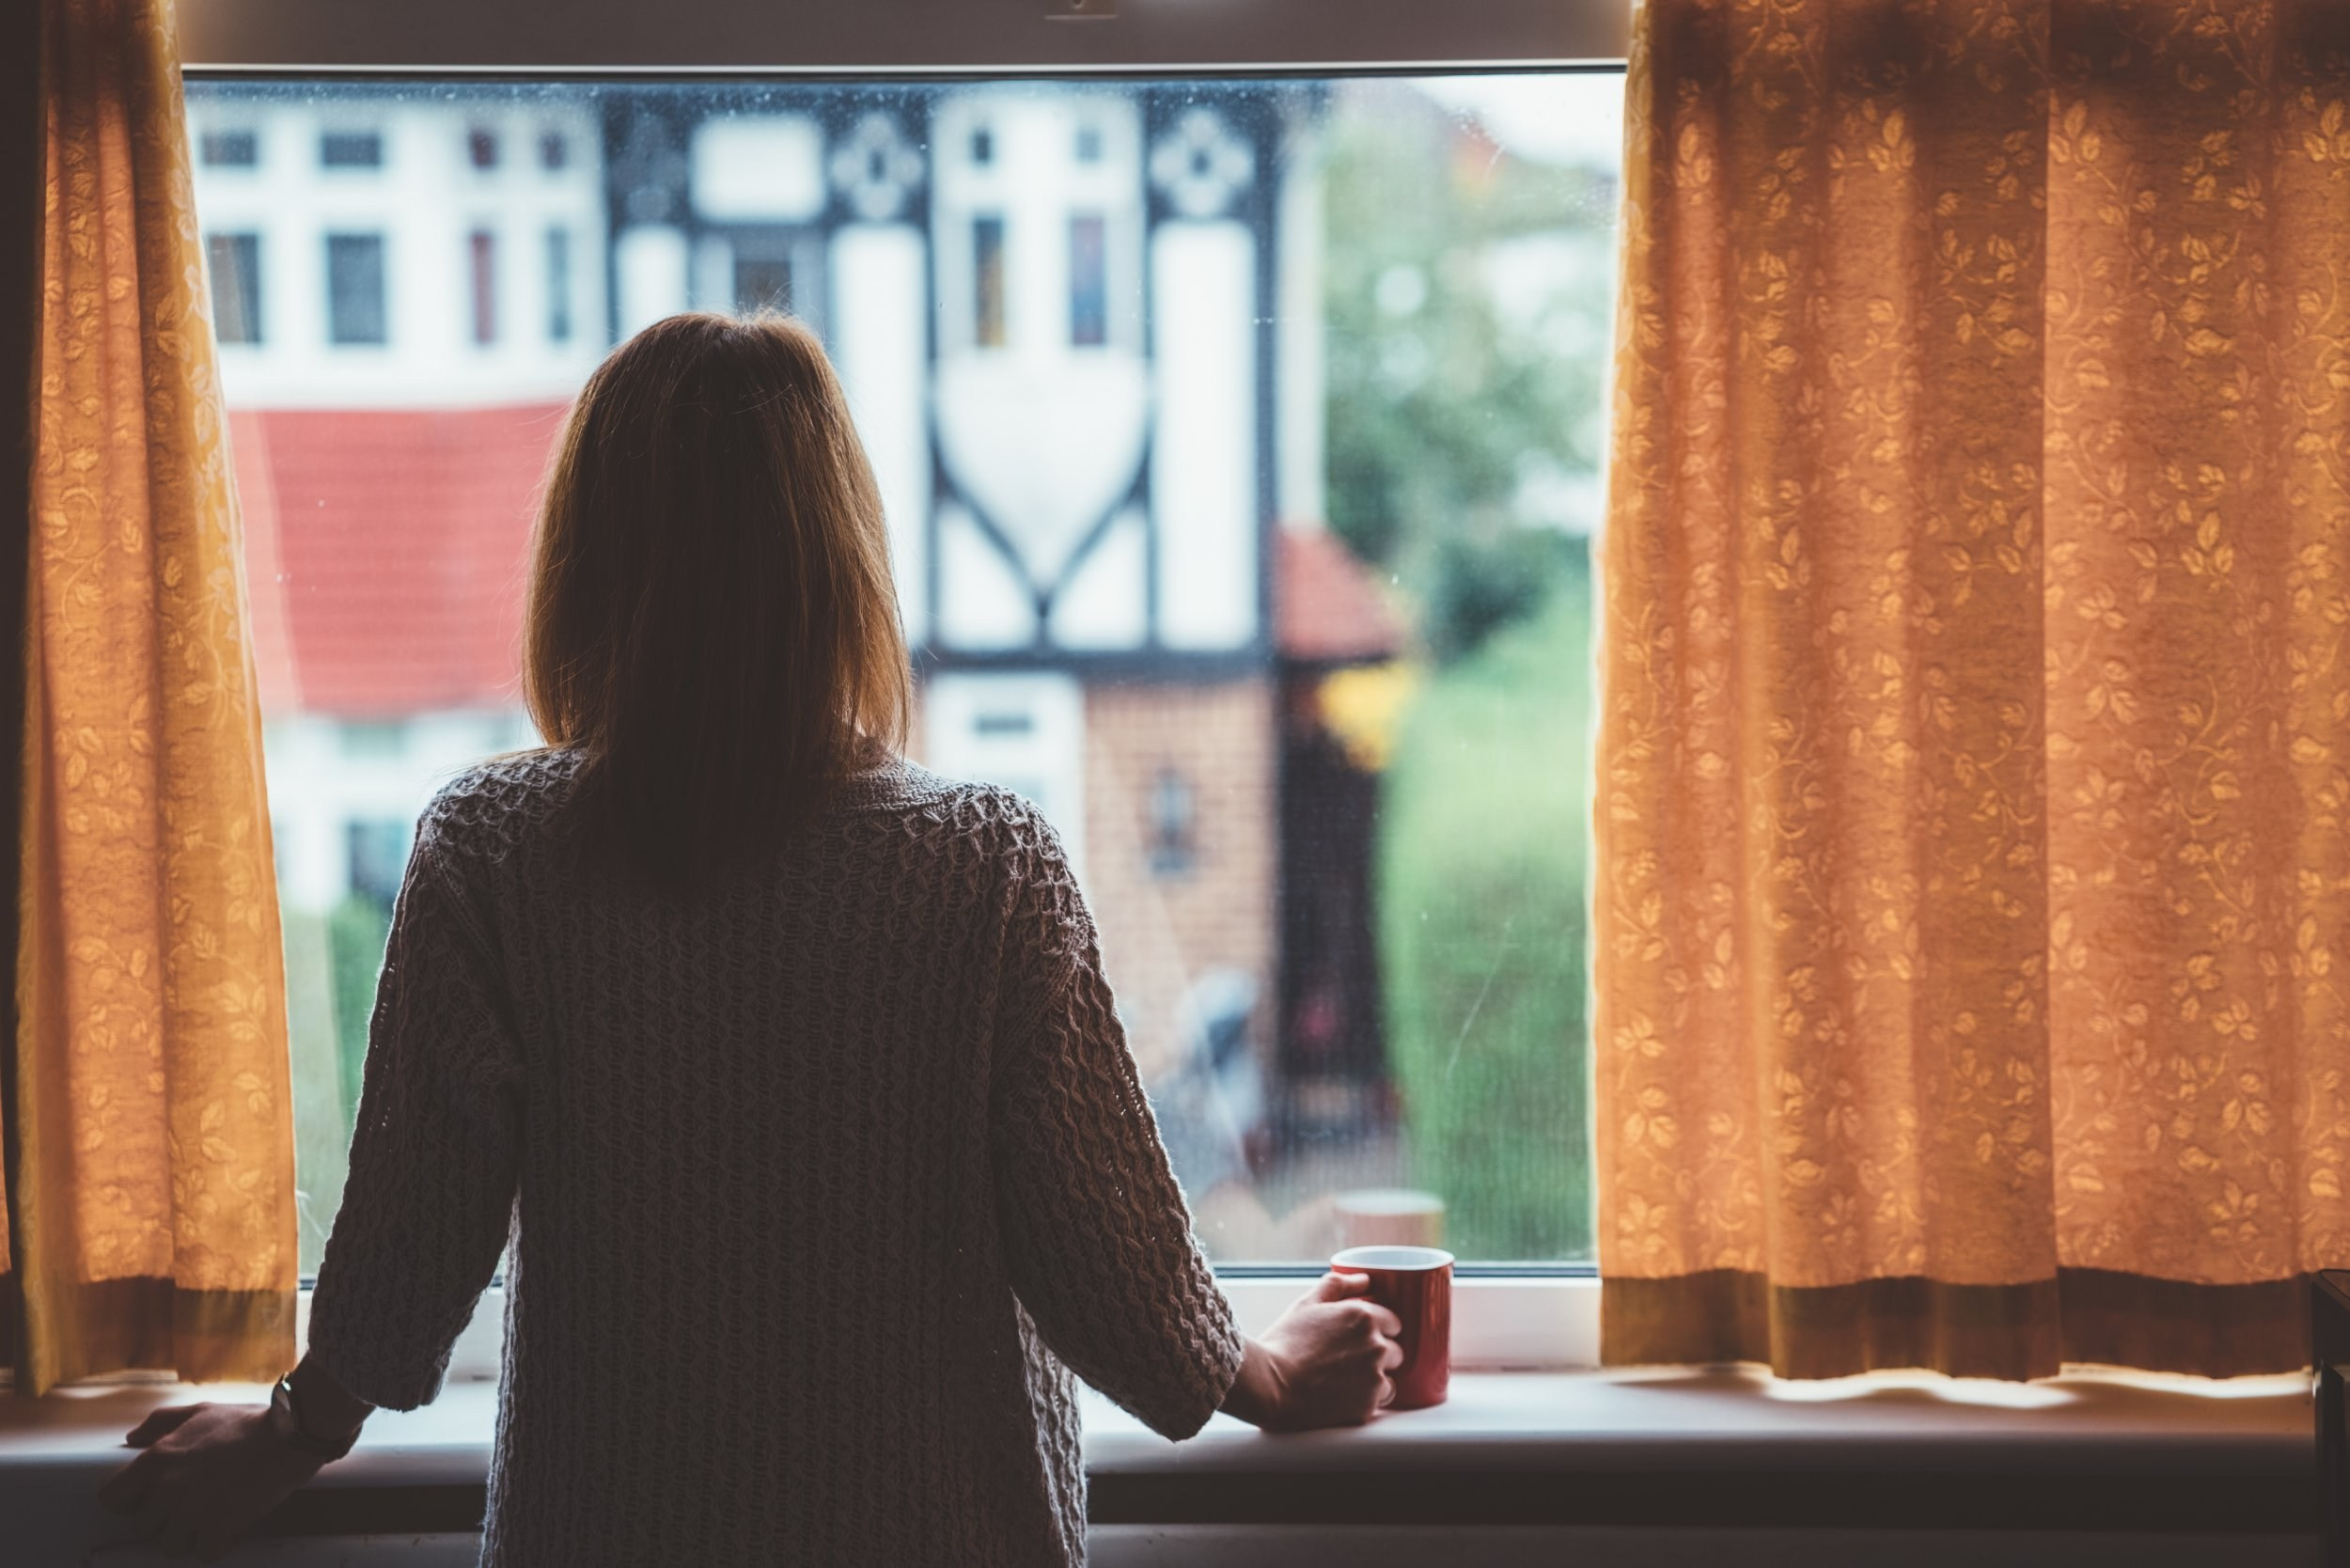 Suicide rate in England and Wales reaches highest level for 14 years